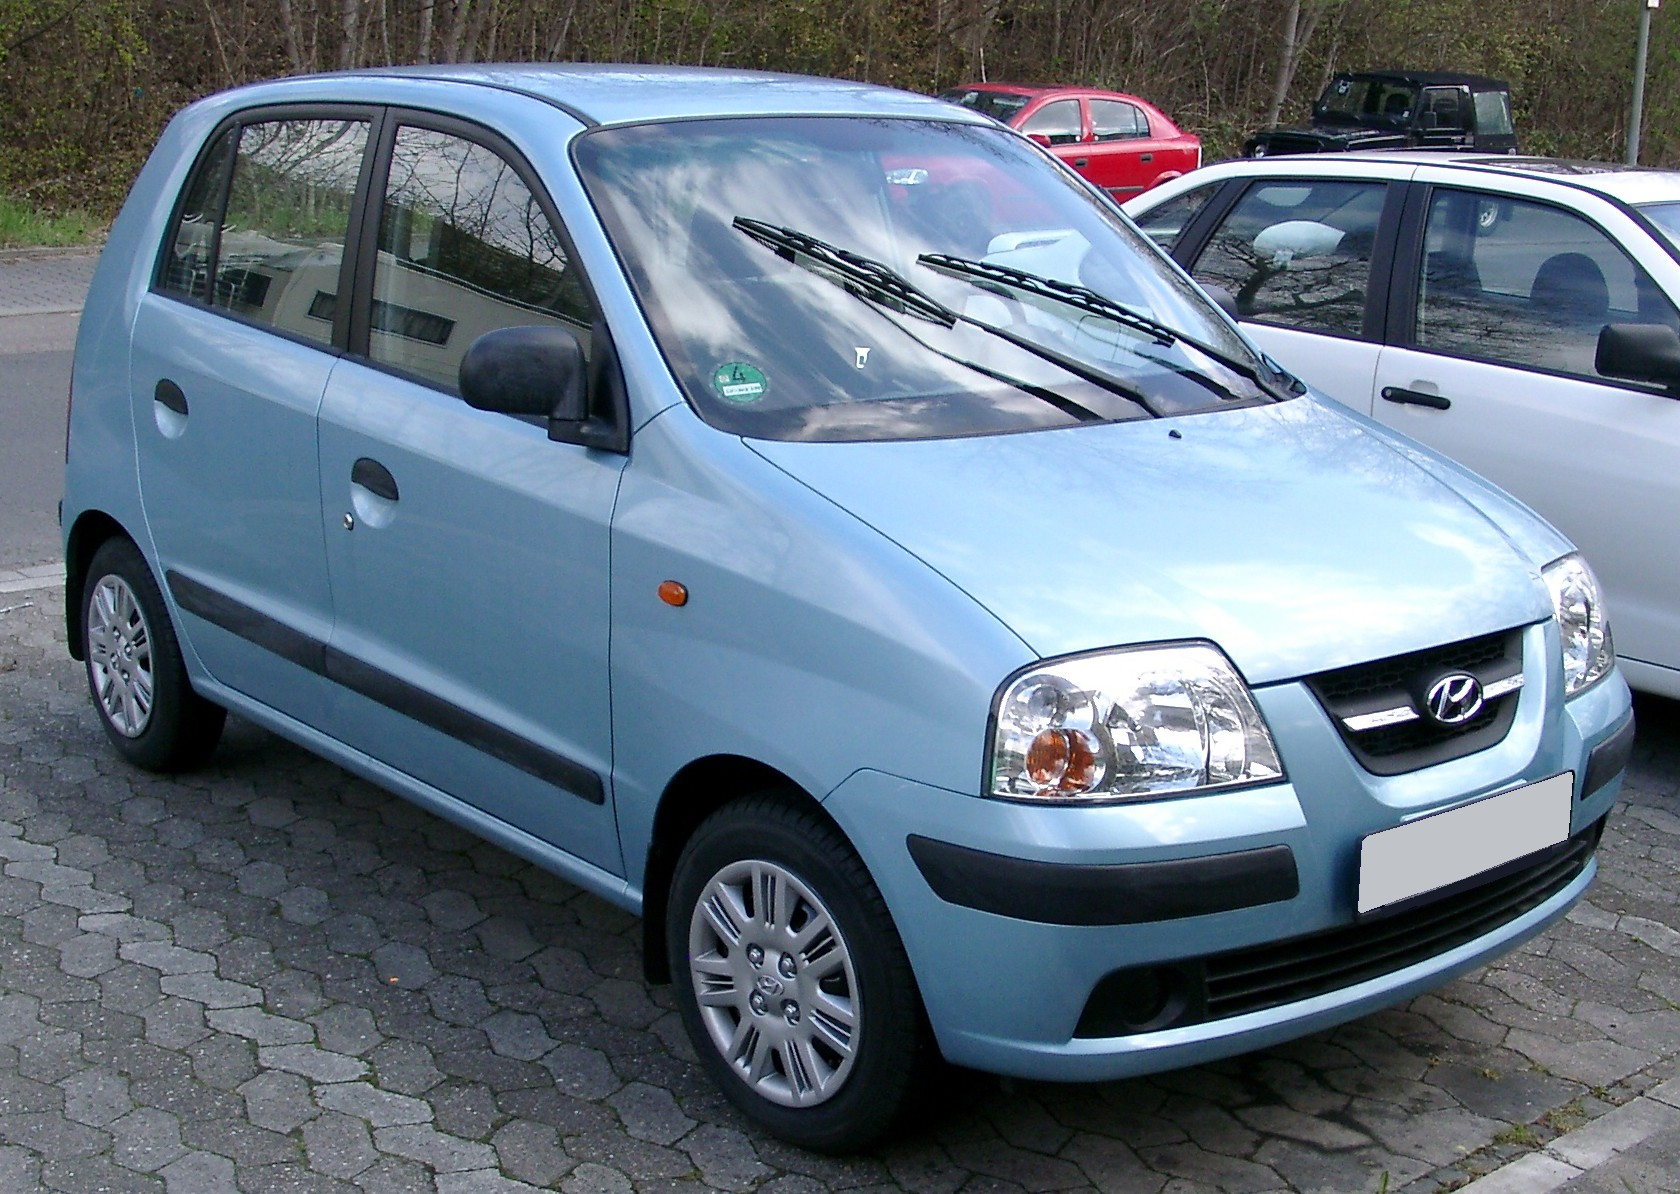 2000 hyundai atos prime pictures information and specs. Black Bedroom Furniture Sets. Home Design Ideas